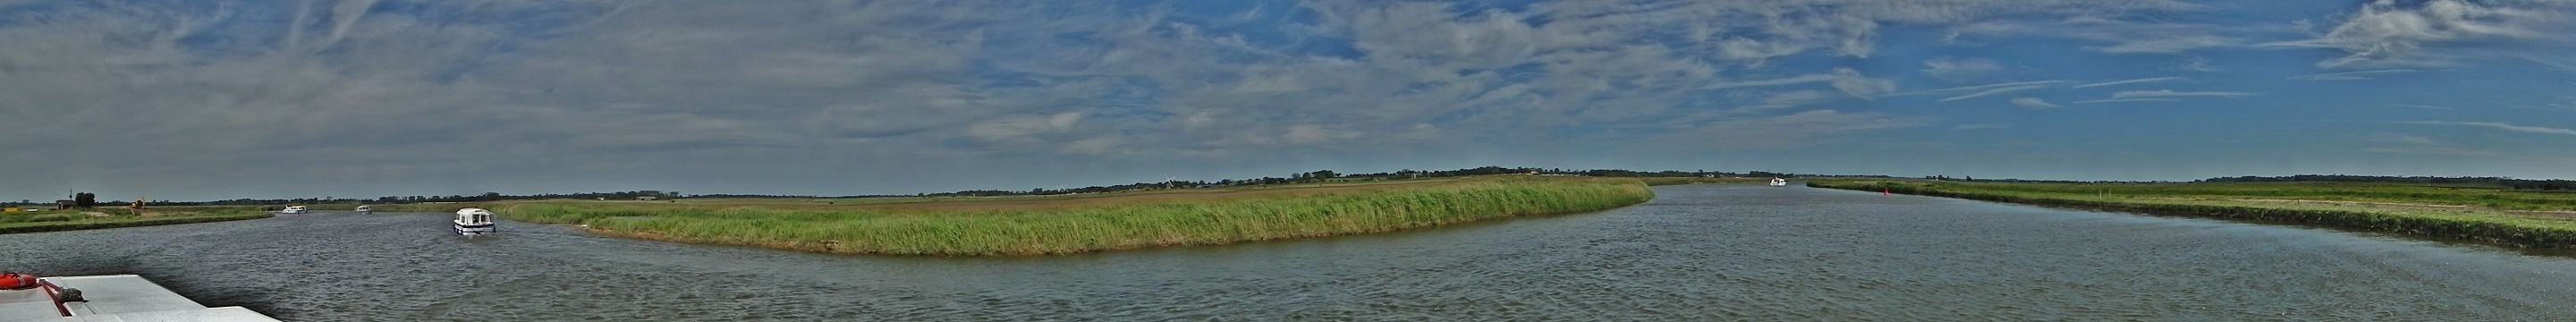 Panoramic view of the River Bure at the mouth of the Upton Dyke